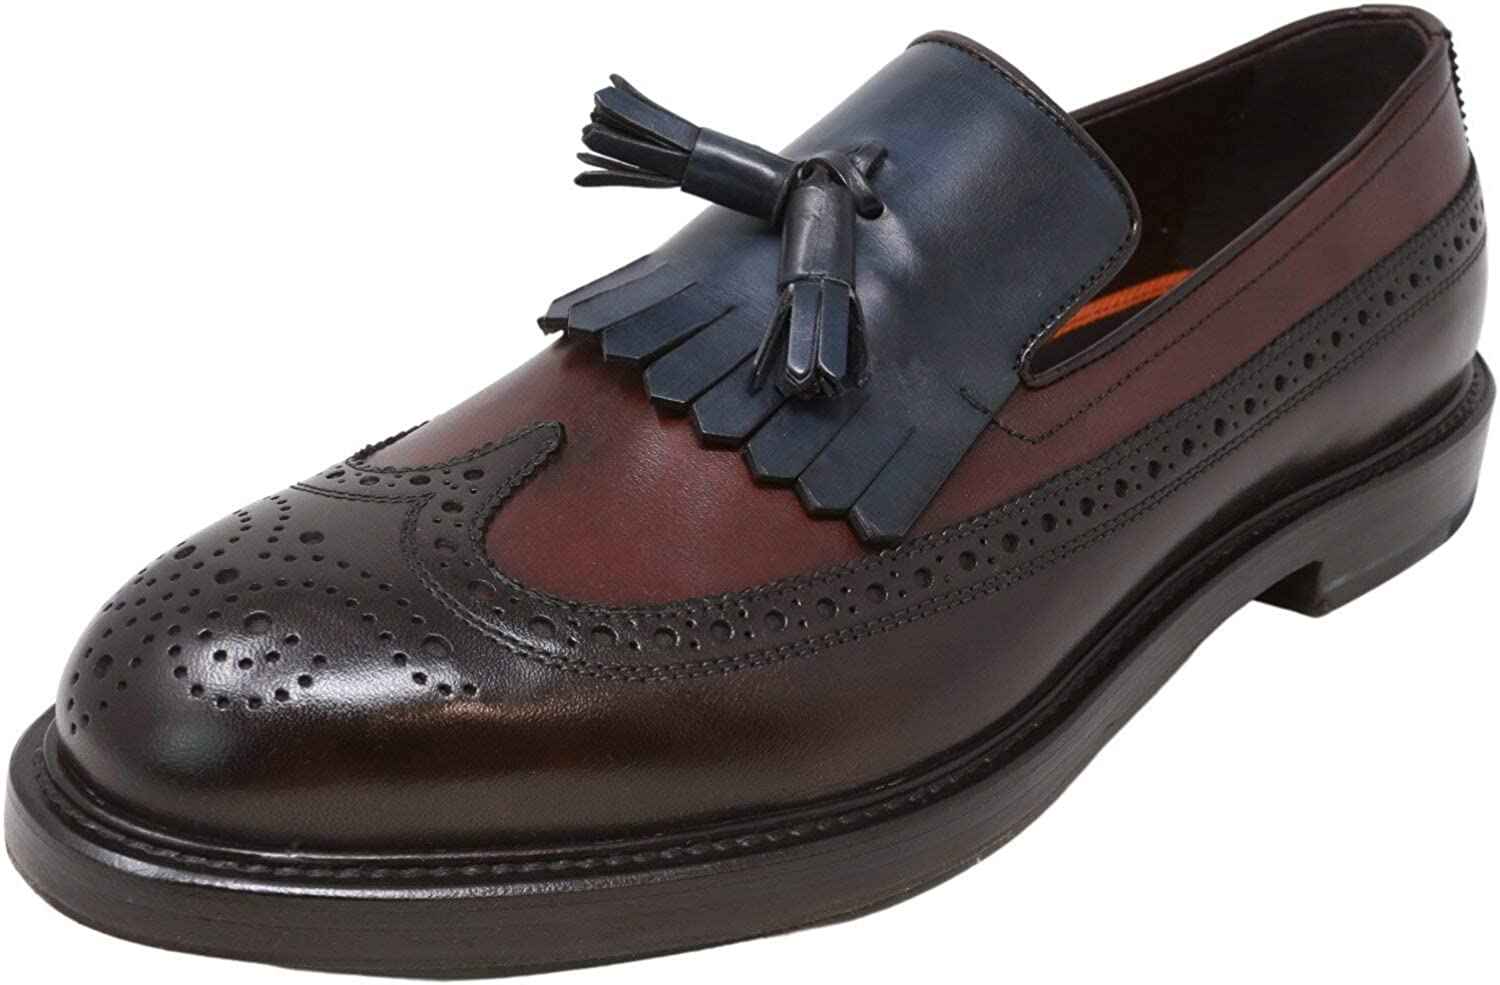 Henderson Baracco Men's 57404 Ankle-High Leather Oxford